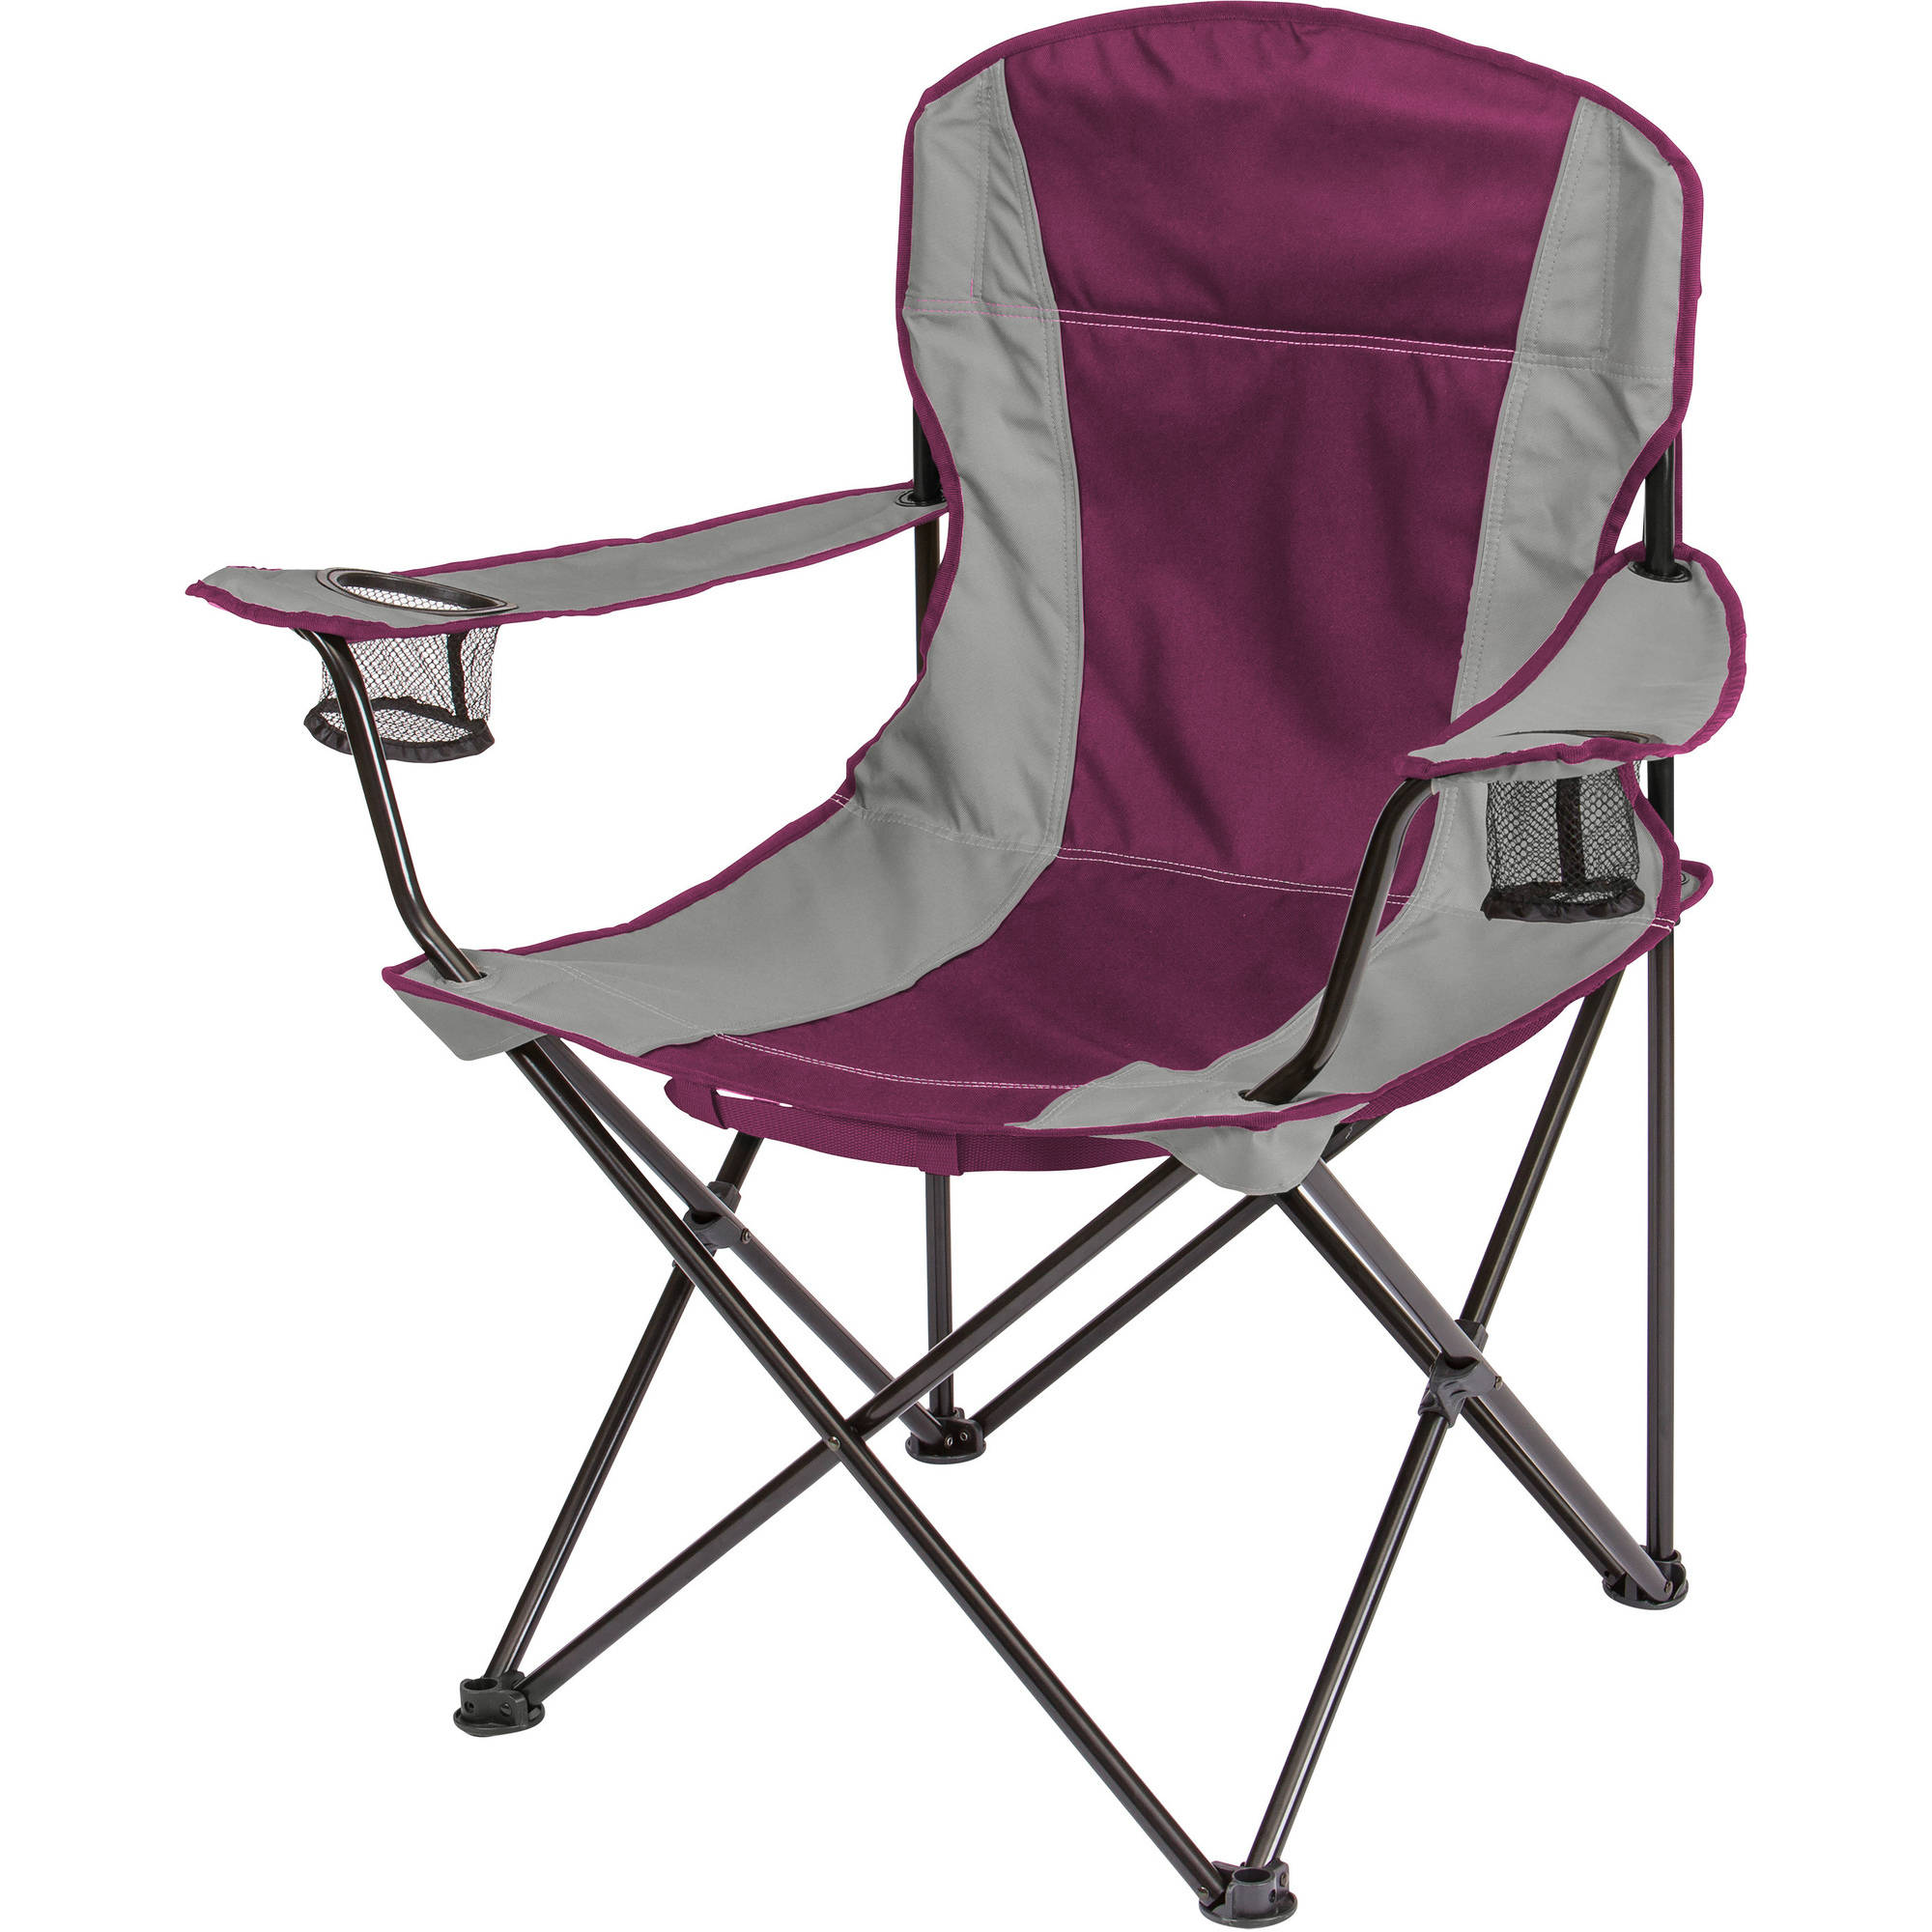 ozark trail oversized mesh chair oxo tot high seedling quad - best chairs & stools